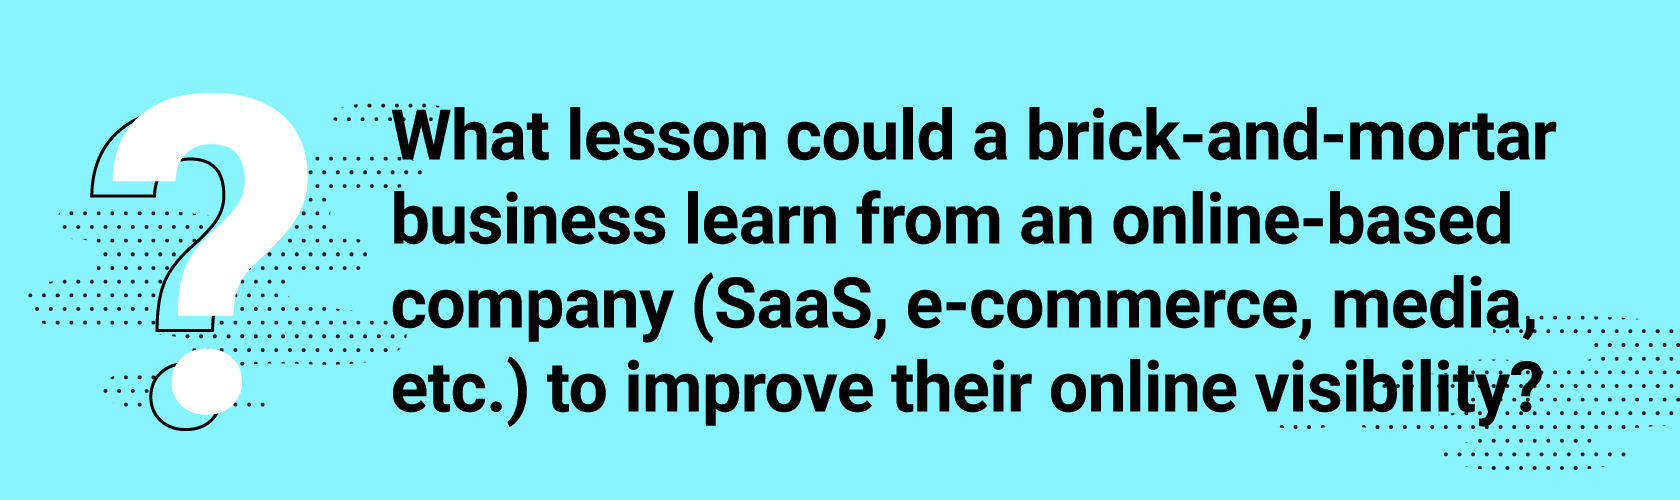 What lesson could a brick-and-mortar business learn from an online-based company (SaaS, e-commerce, media, etc.) to improve their online visibility?